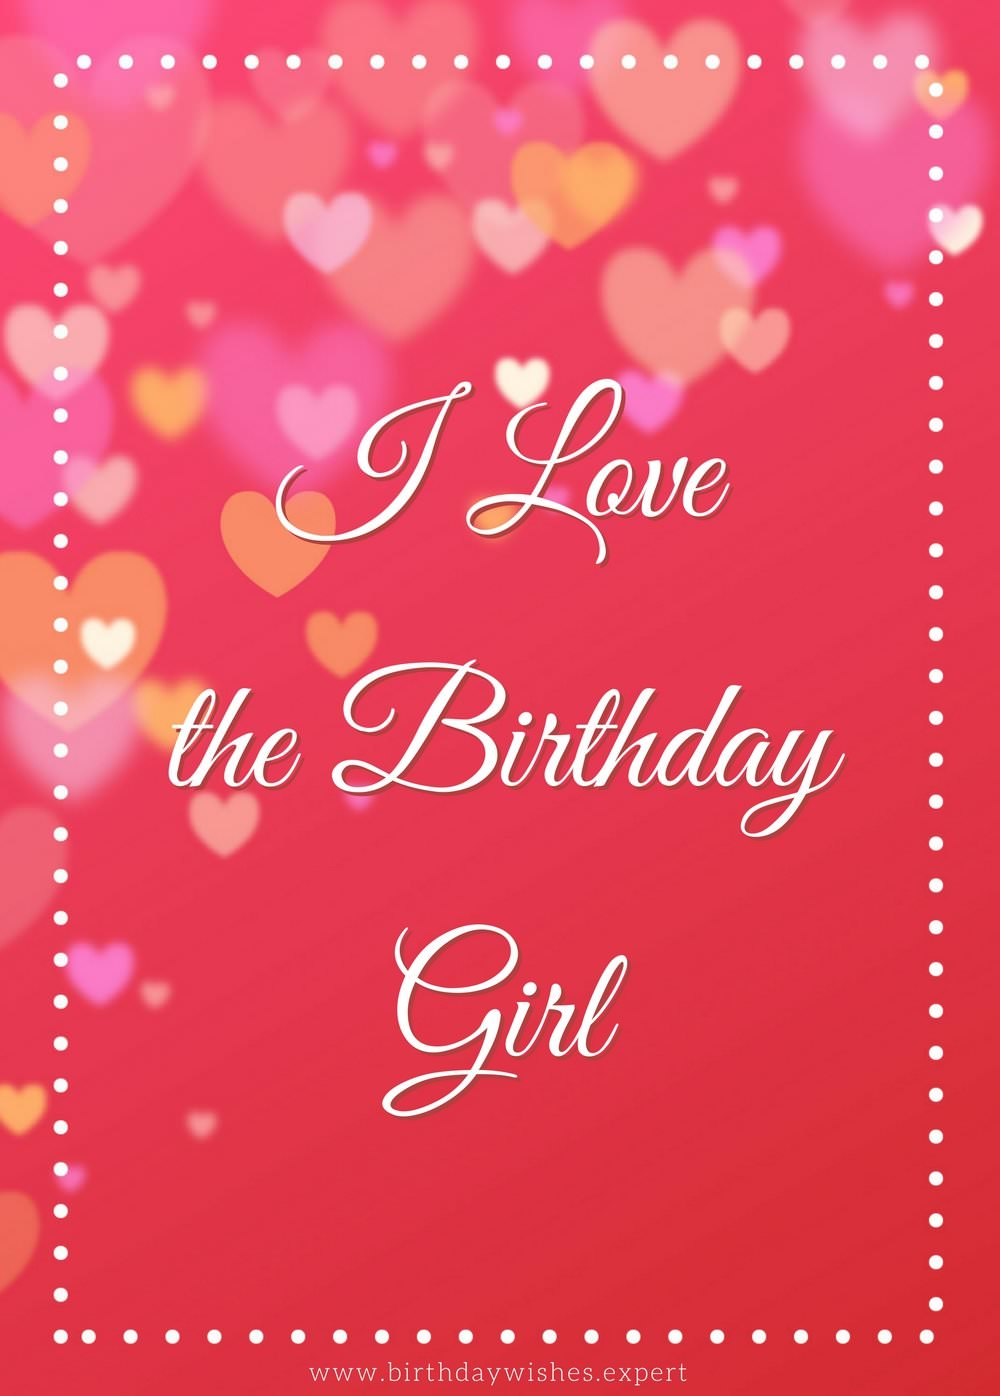 birthday wishes for girlfriend greeting card ; I-love-the-birthday-girl